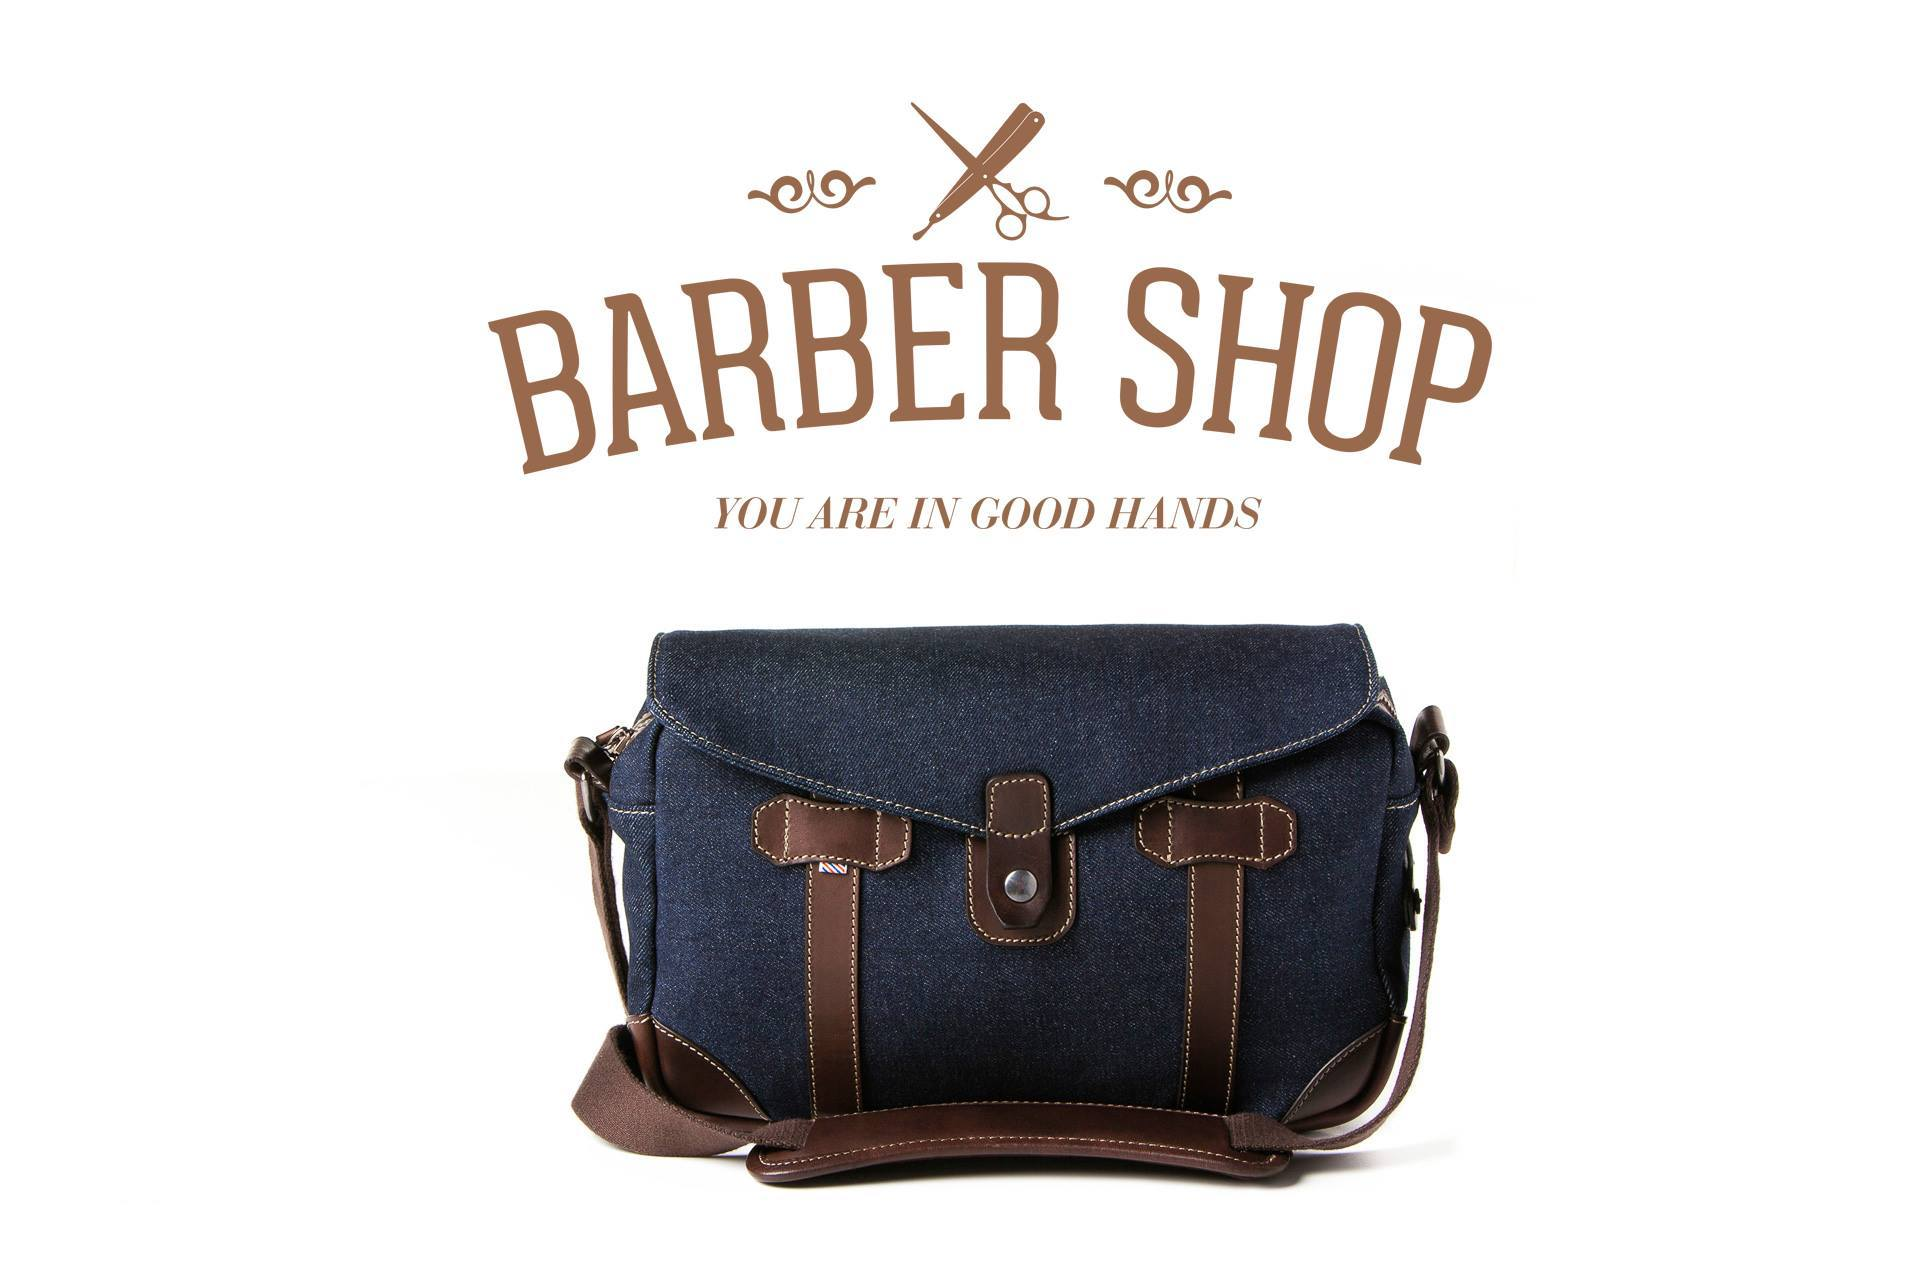 We Were Informed Of A Brand New Collection Italian Leather Bags And Accessories Straps Wallets Etc For Man Women Barber